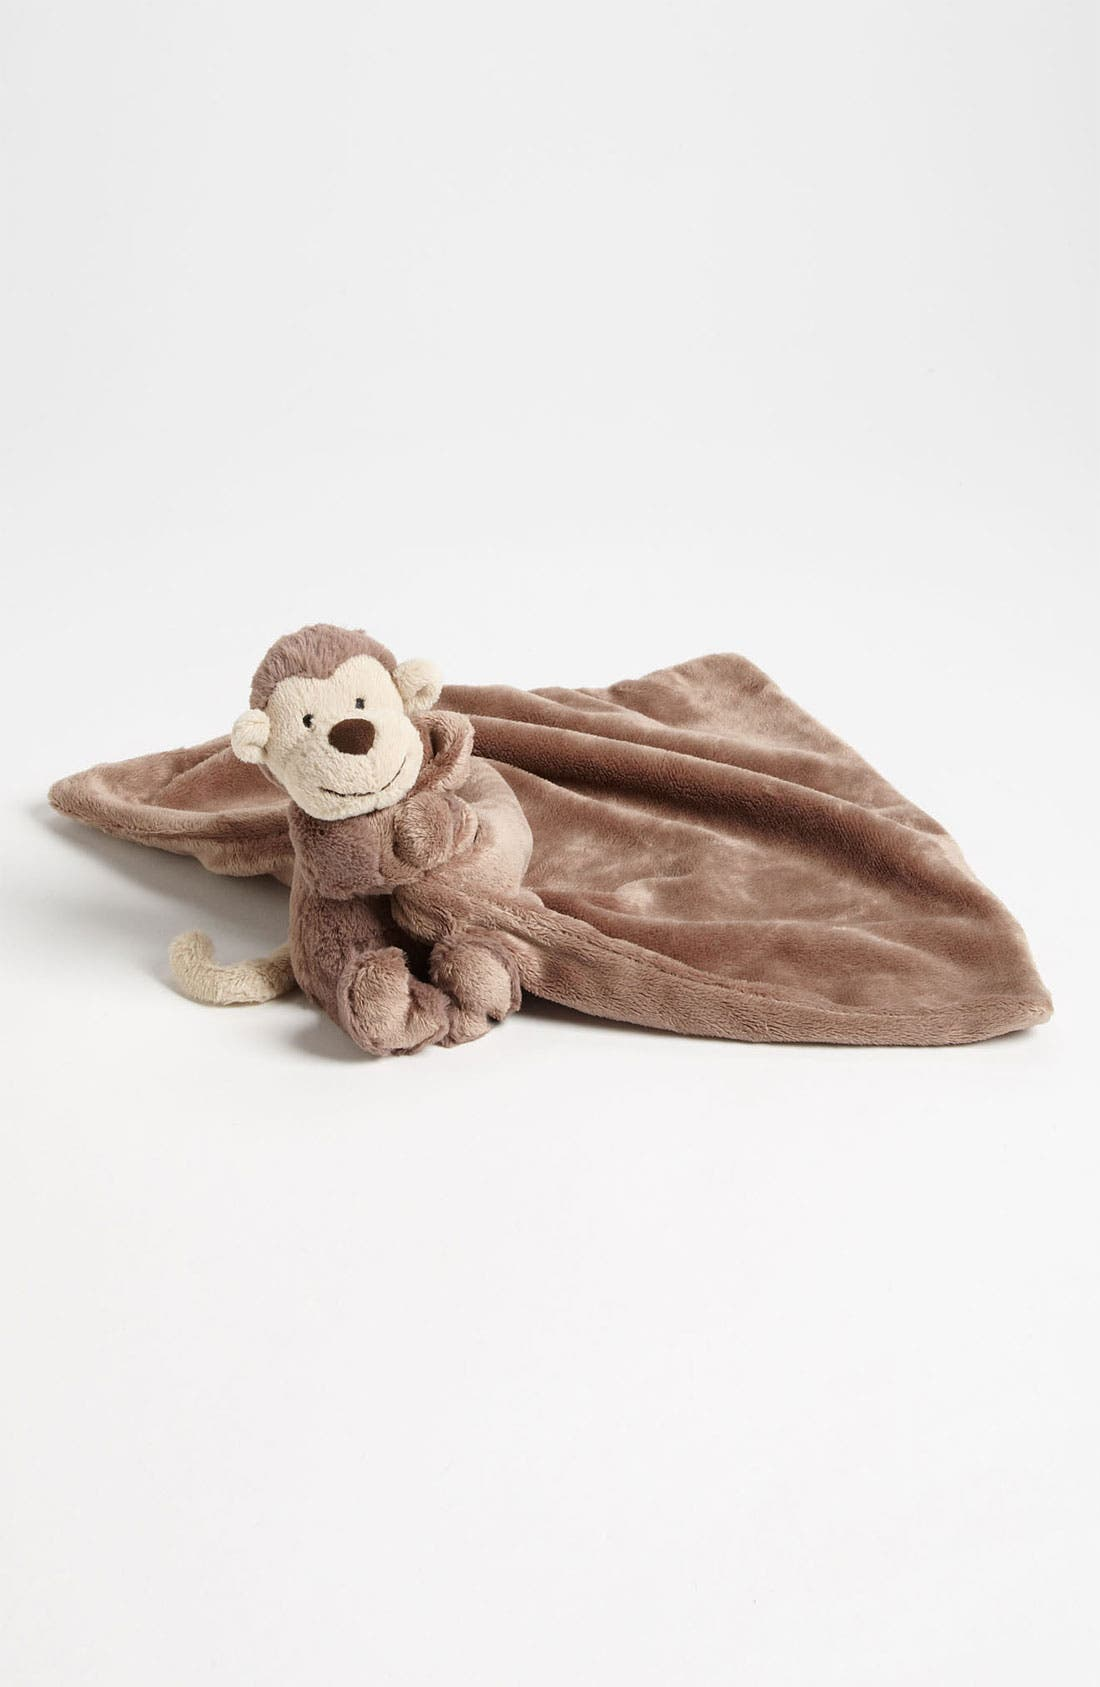 'Bashful Monkey Soother' Stuffed Animal & Blanket,                             Main thumbnail 1, color,